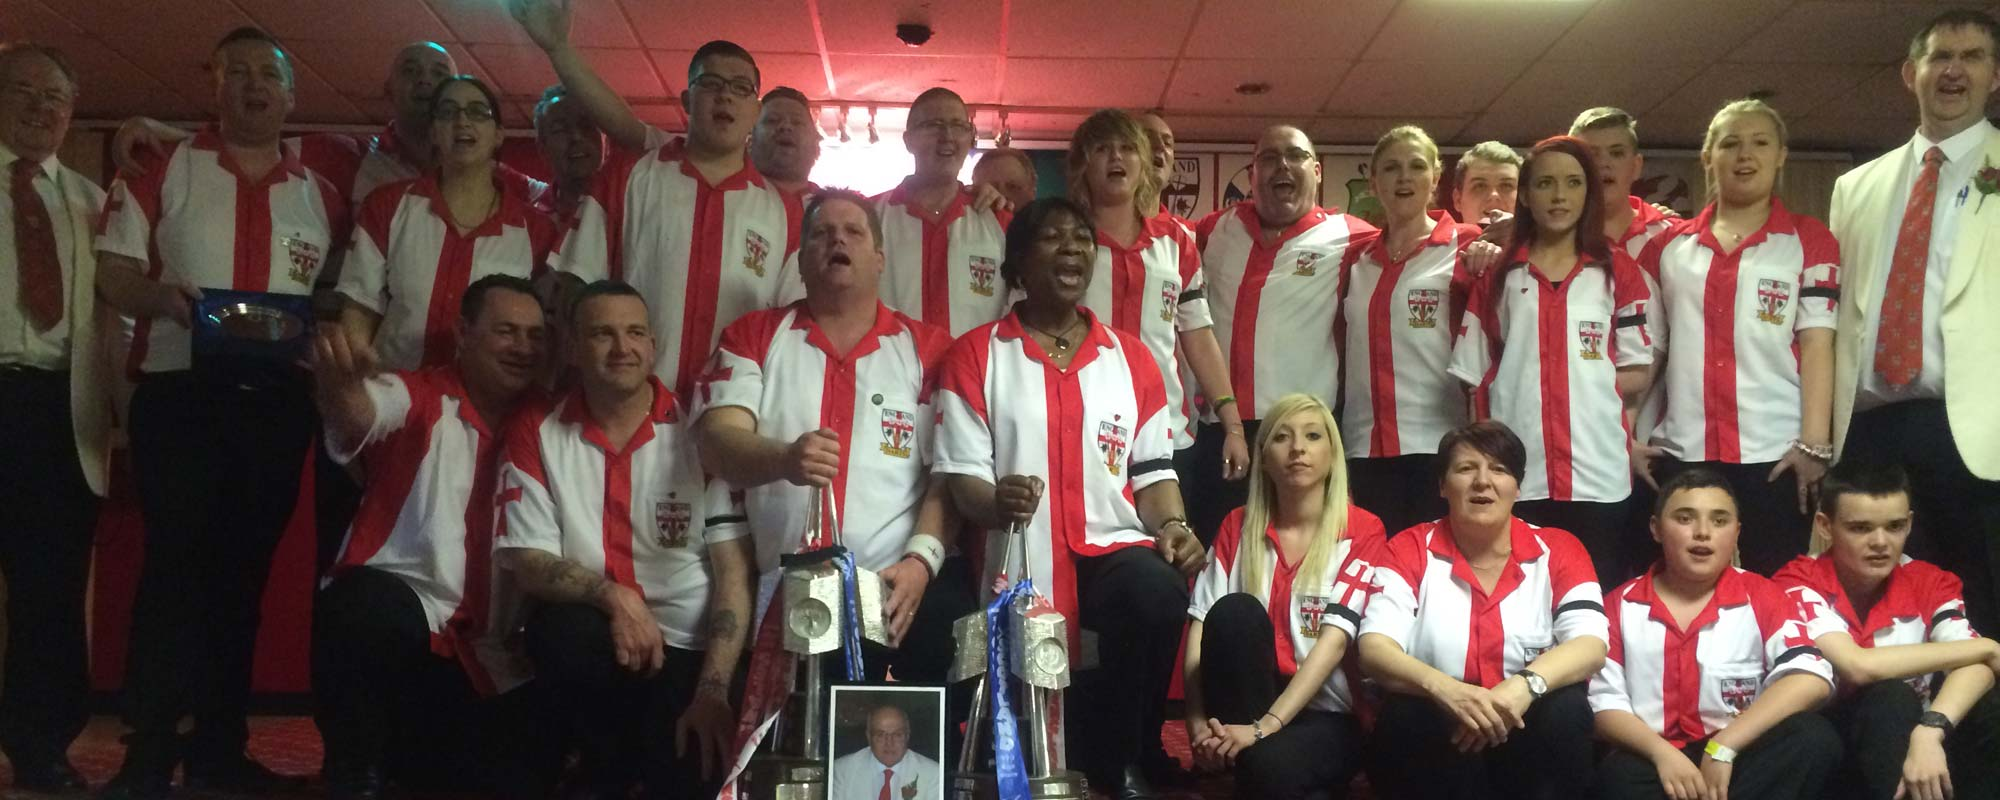 England Team for the BDO Winmau British International Darts Championships 2015 - Banner